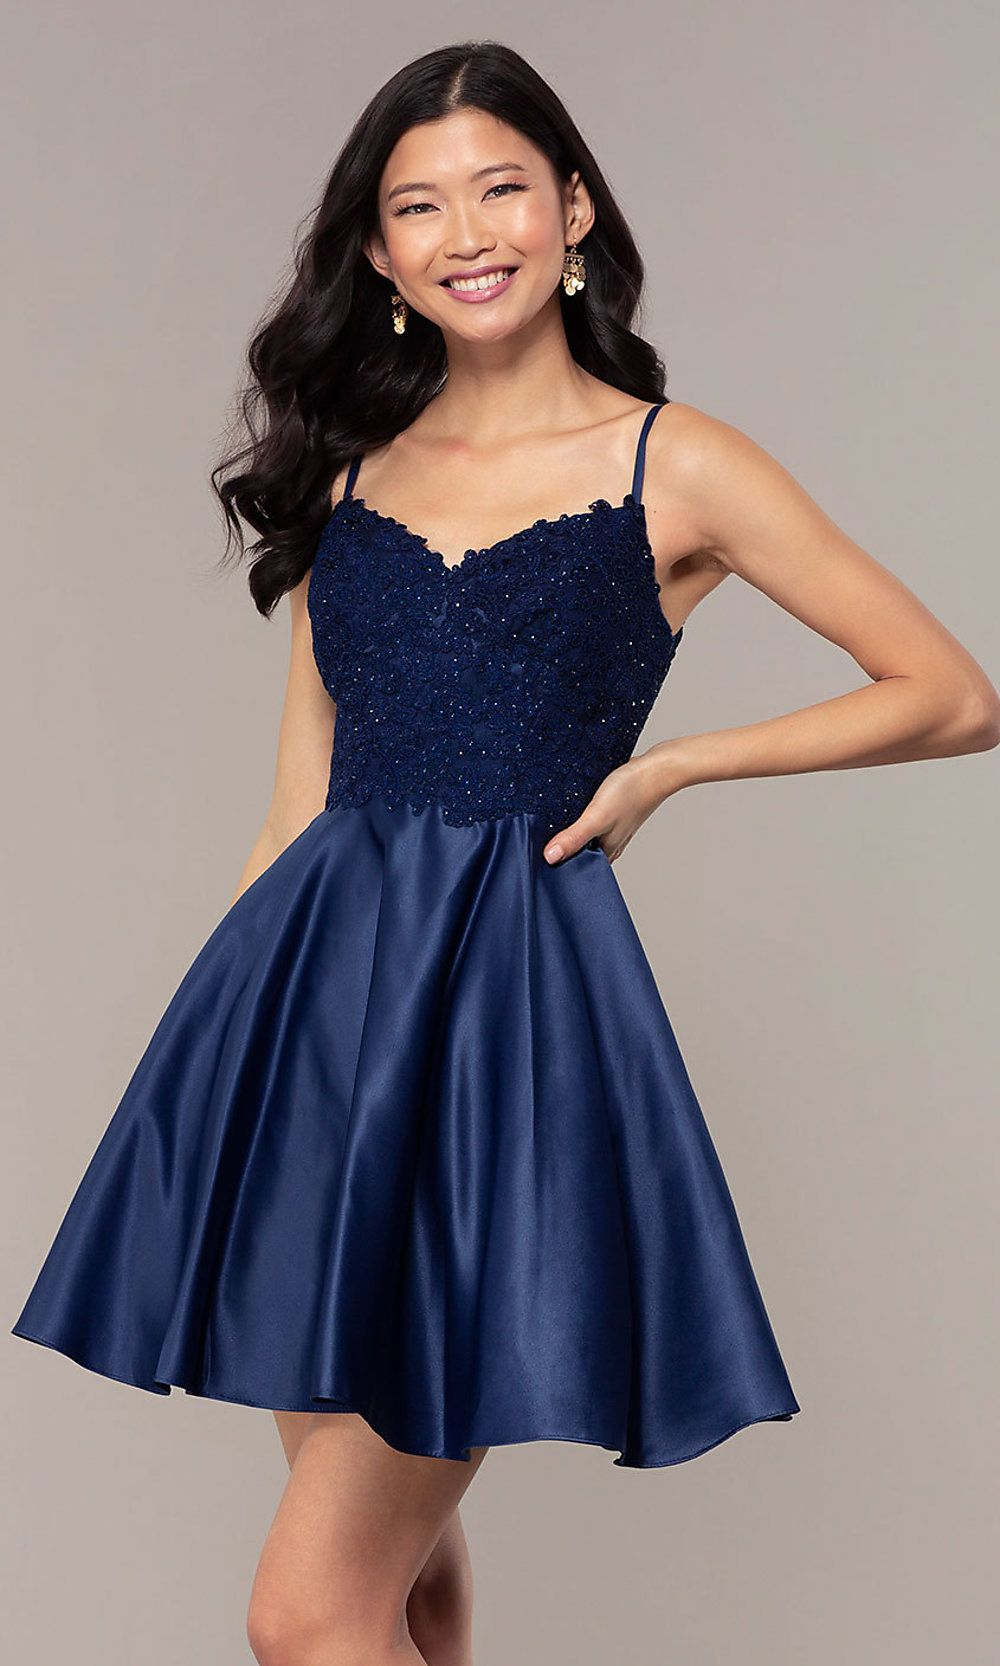 Short Lace-Applique-Bodice A-Line Homecoming Dress  Formal